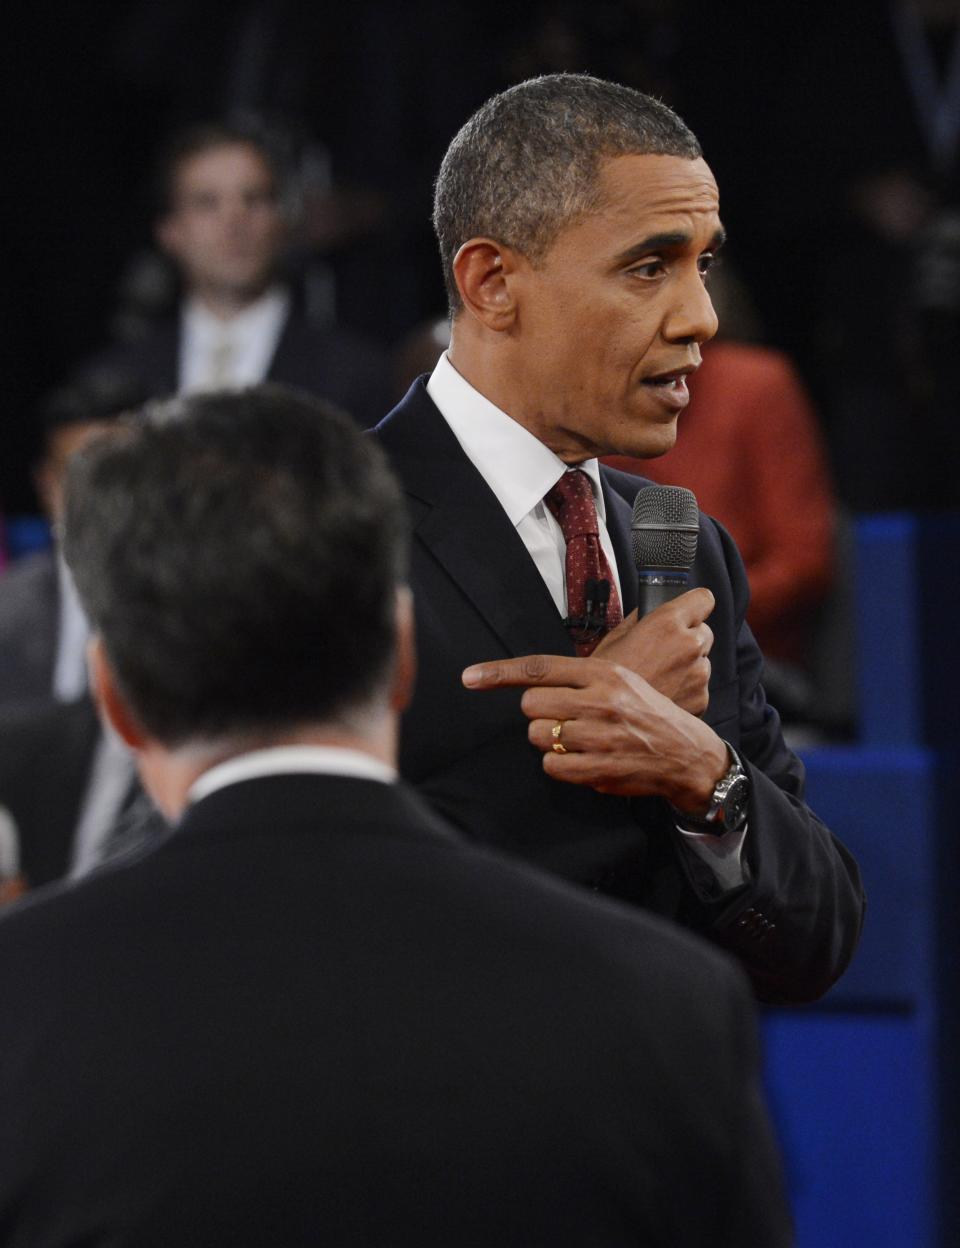 Republican presidential nominee Mitt Romney, left, listens as President Barack Obama addresses members of the audience during the second presidential debate at Hofstra University, Tuesday, Oct. 16, 2012, in Hempstead, N.Y. (AP Photo/Pool-Michael Reynolds)